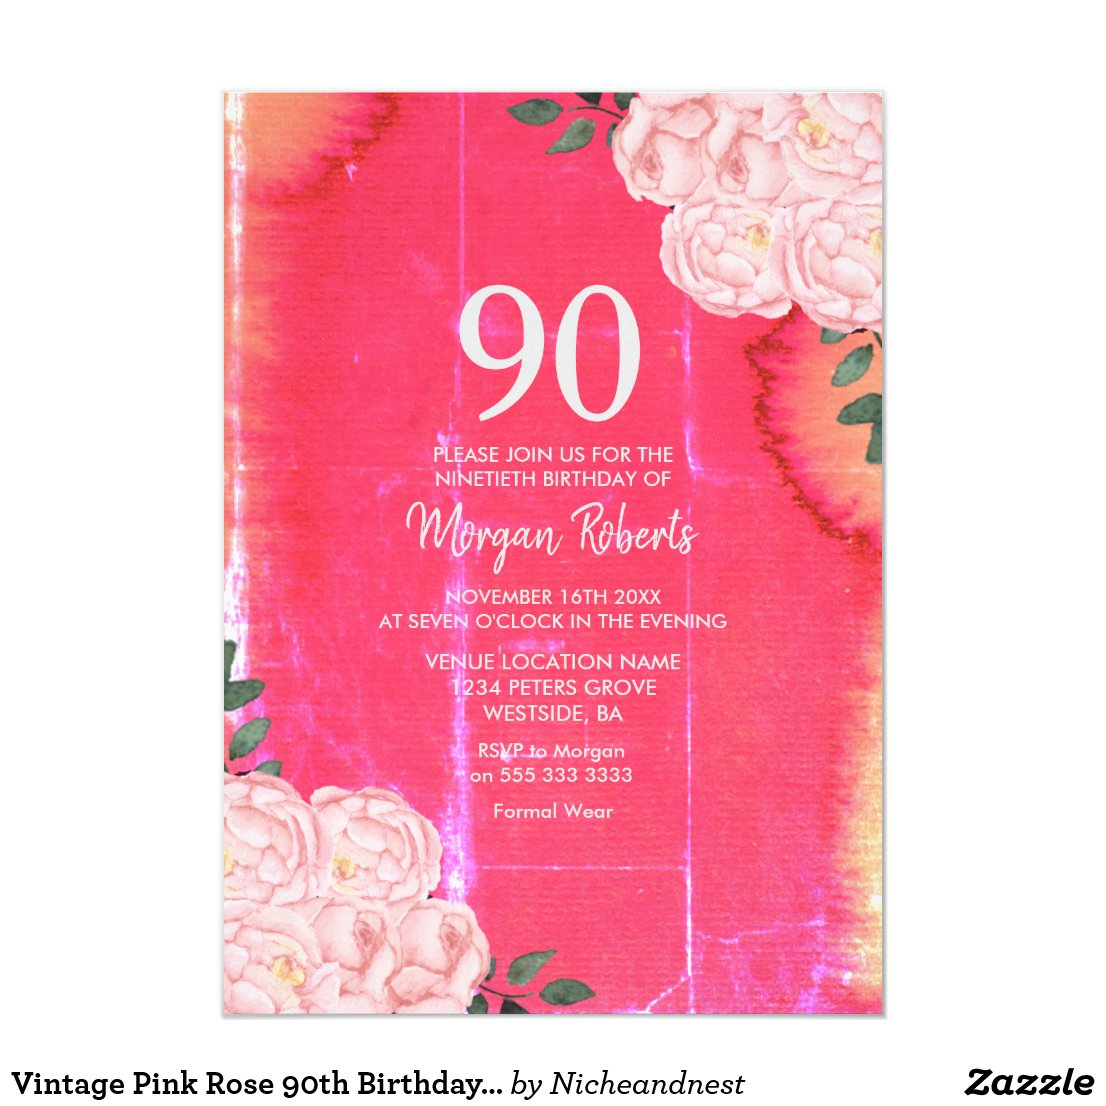 Vintage Pink Rose 90th Birthday Invitation